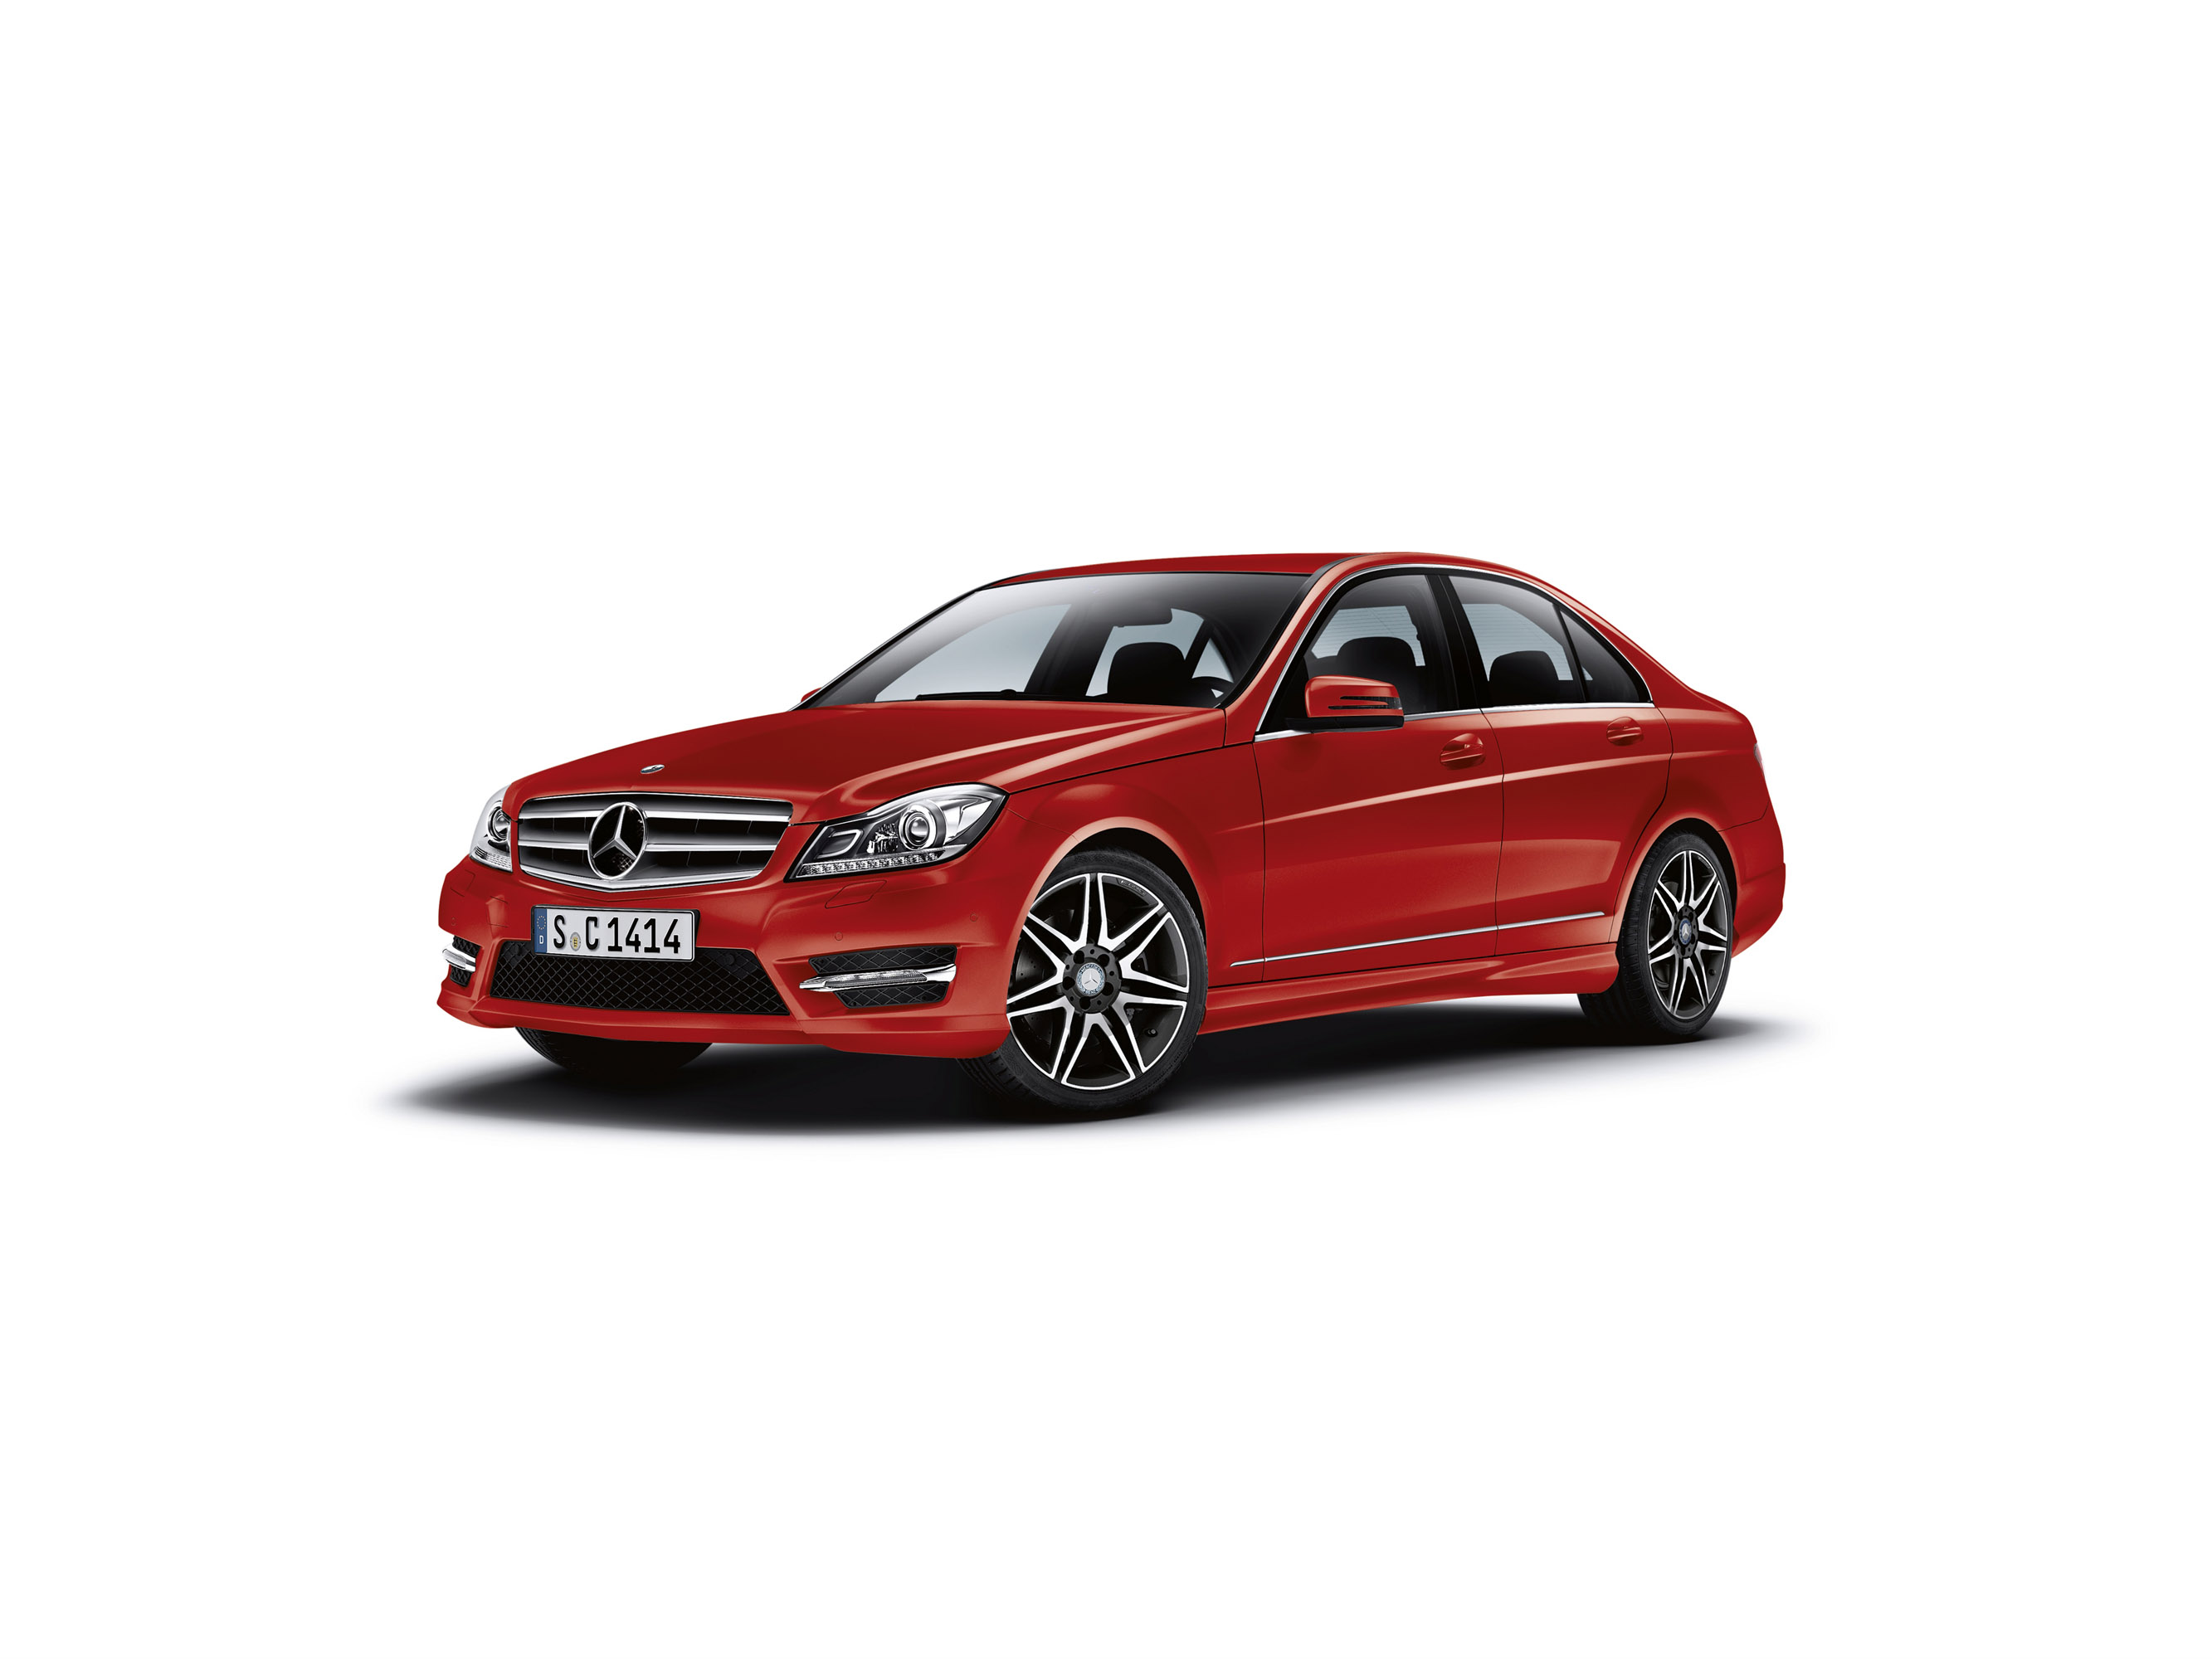 2013 mercedes benz c class welcomes 1 6 engine to the family for Mercedes benz 2013 c class